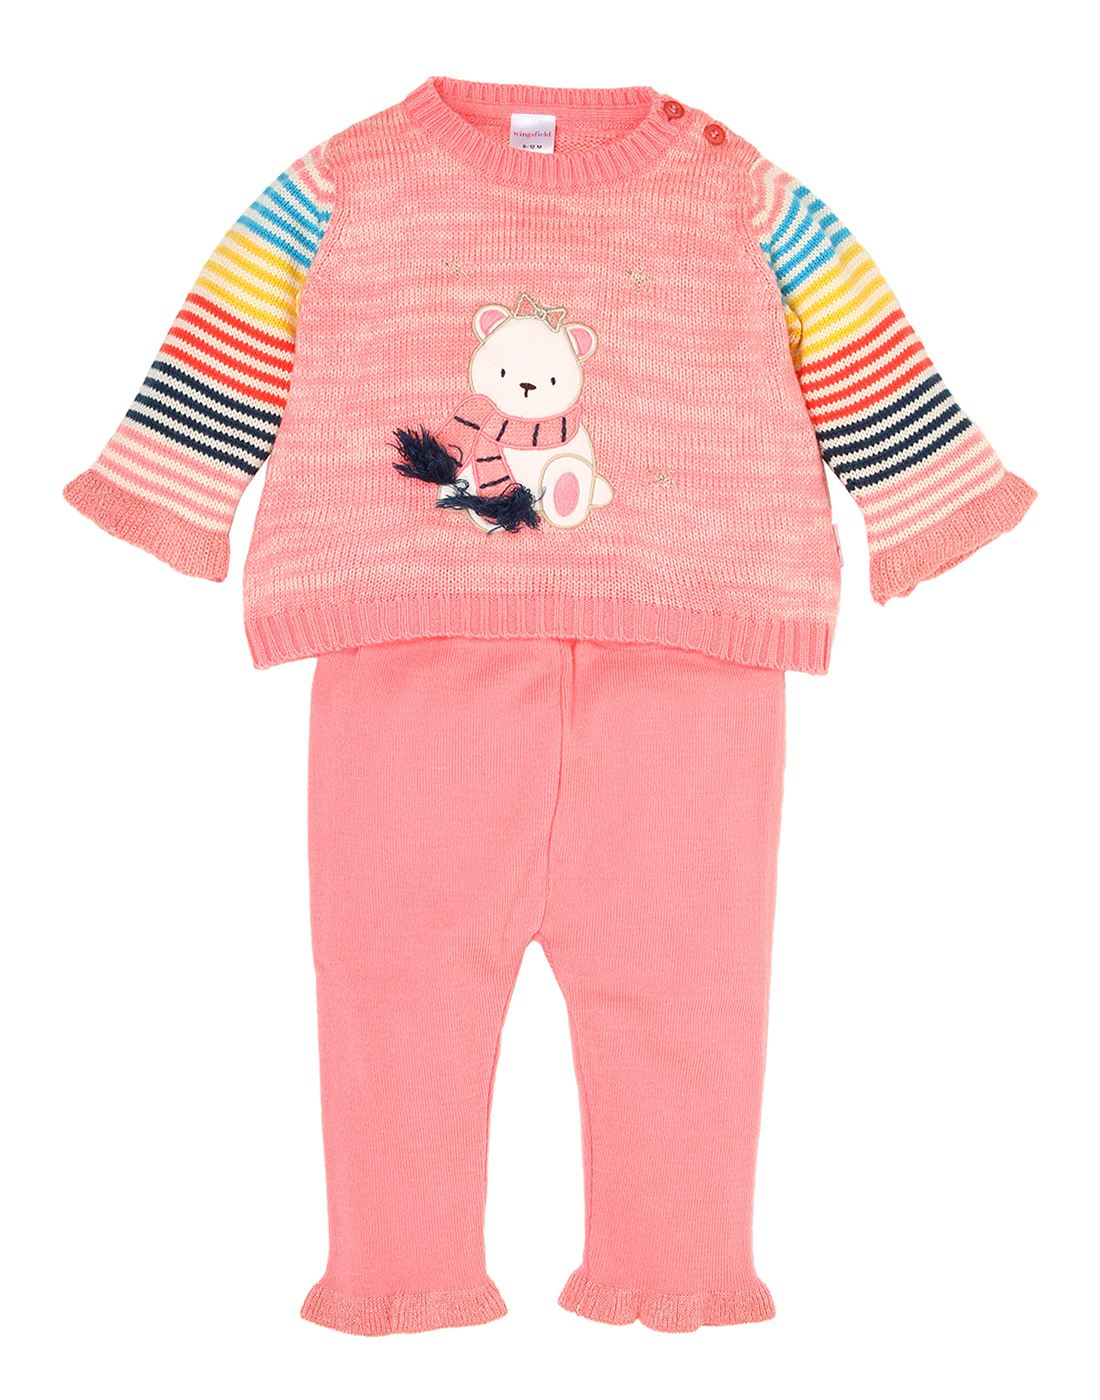 Wingsfield Pink Baby Girl Combo Sets Top & Bottom Set